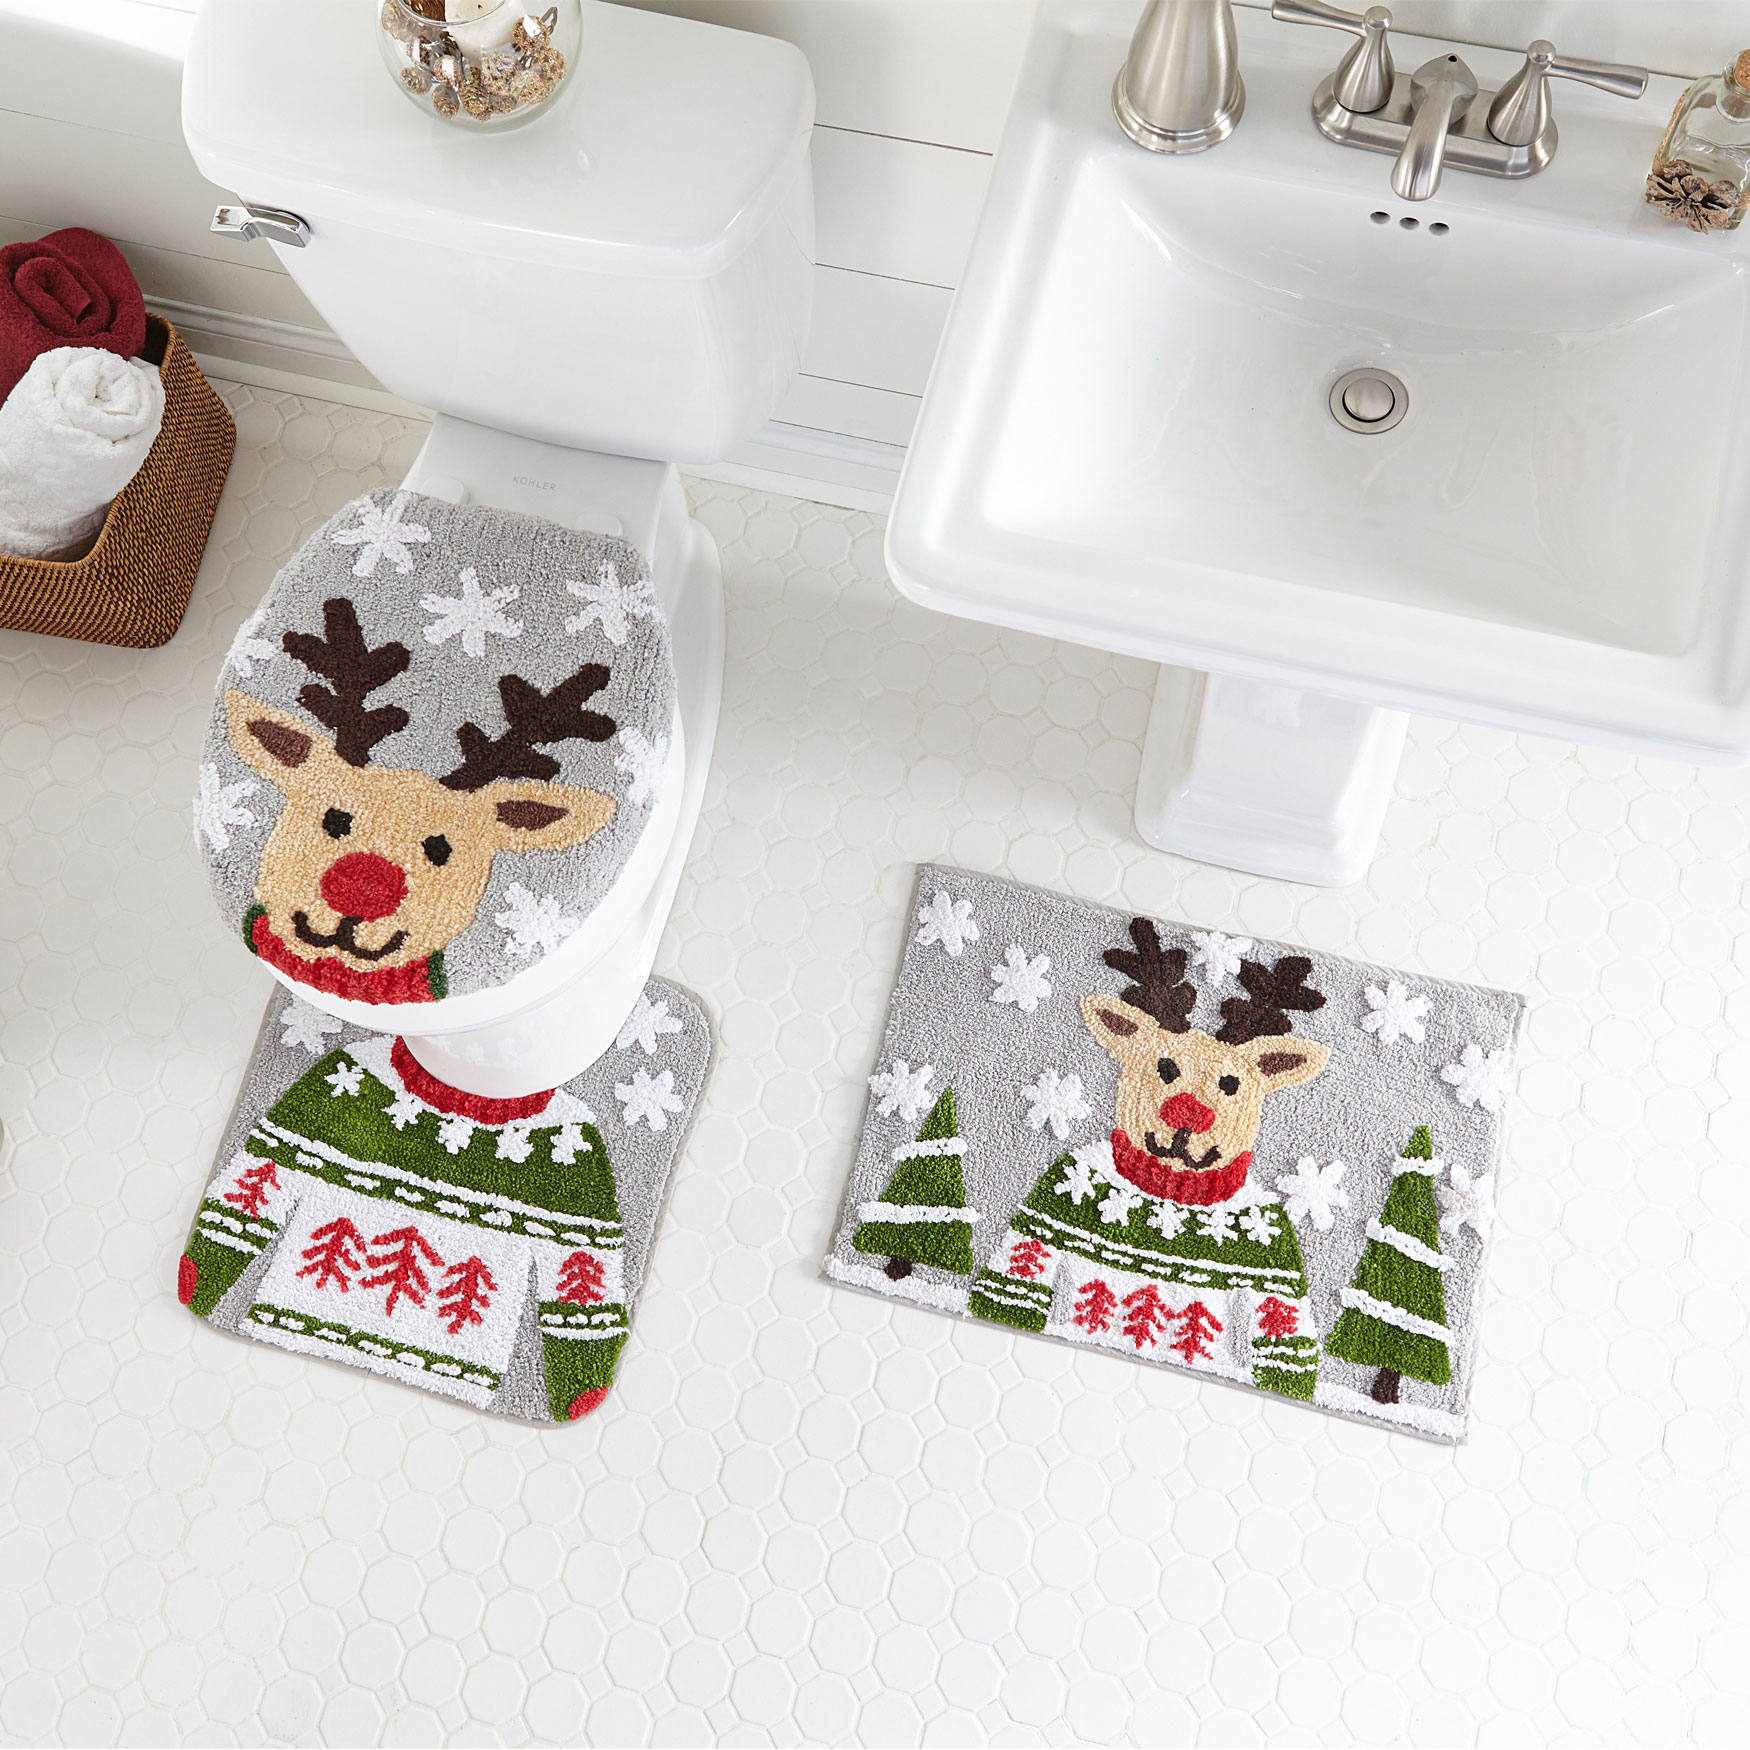 3-Pc. Holiday Bath Rug Set, REINDEER